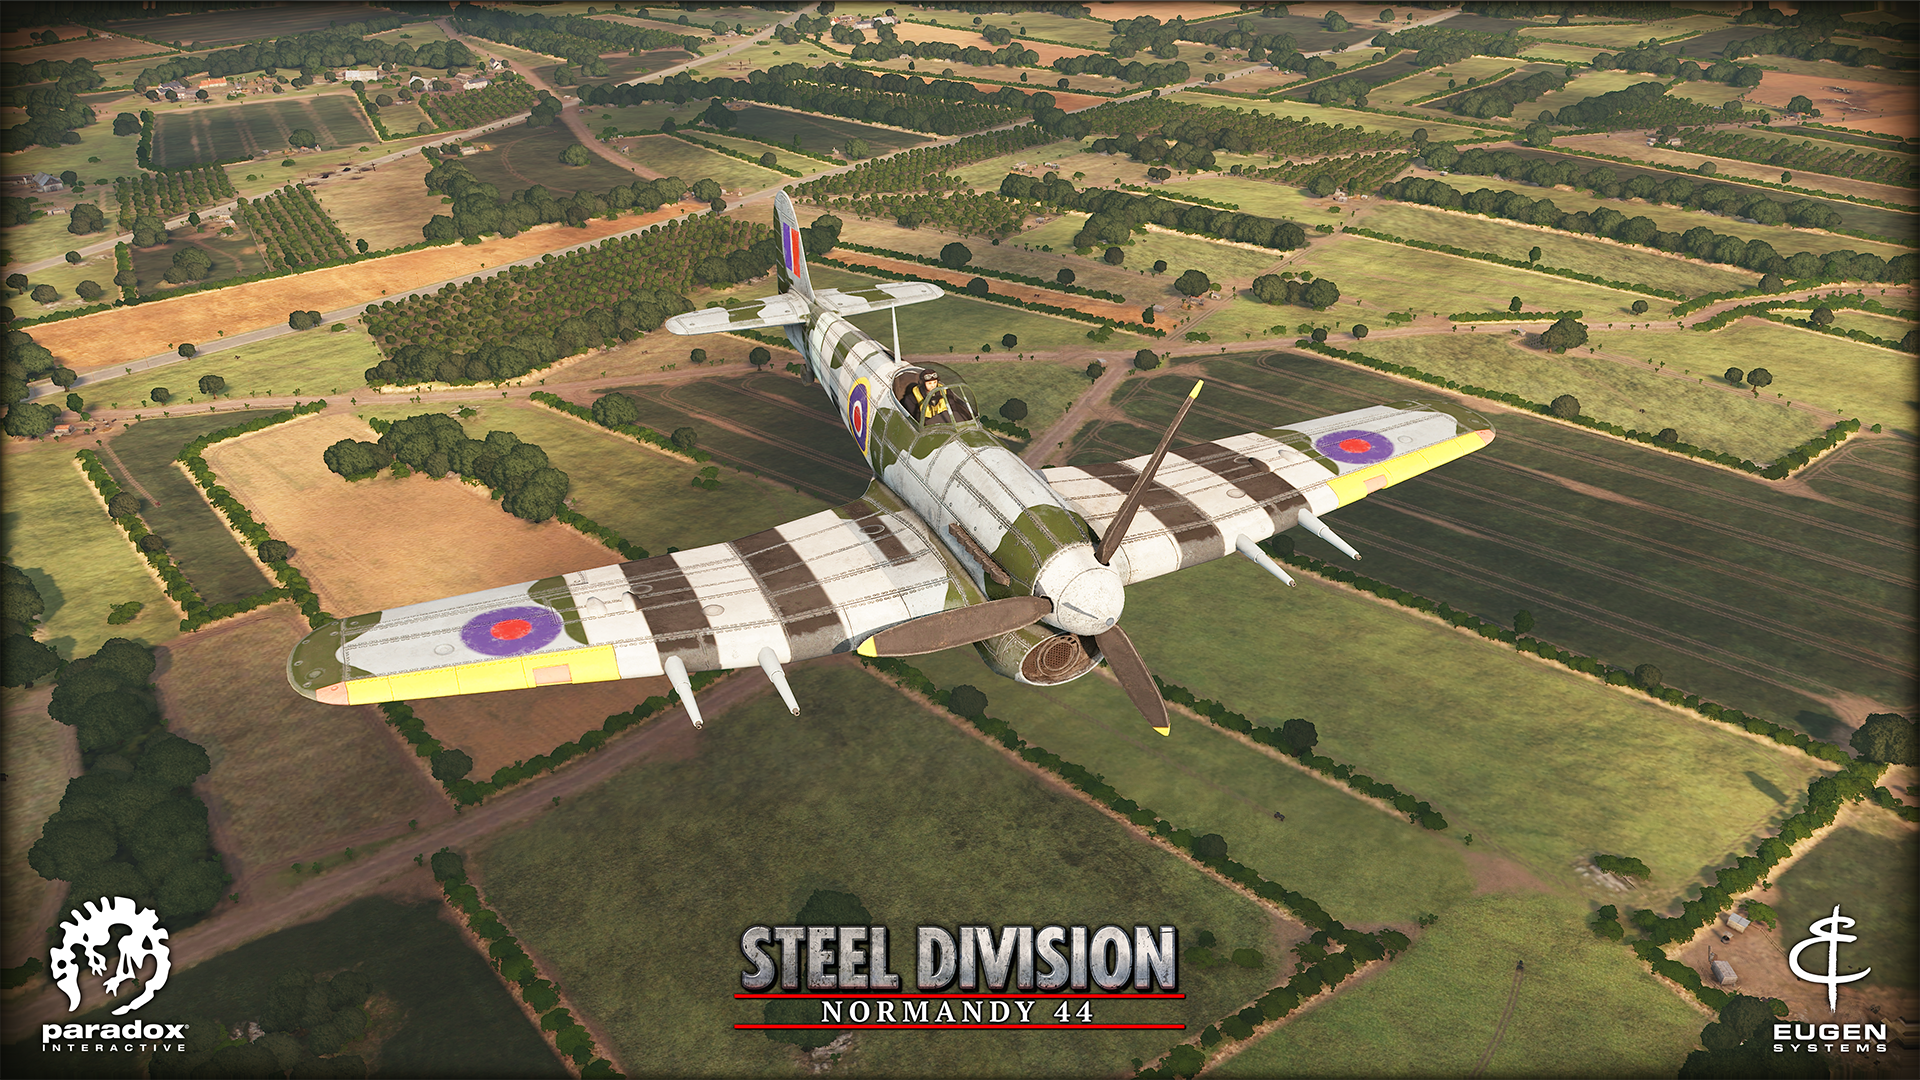 Steel Division: Normandy 44 6th Airborne Typhoon